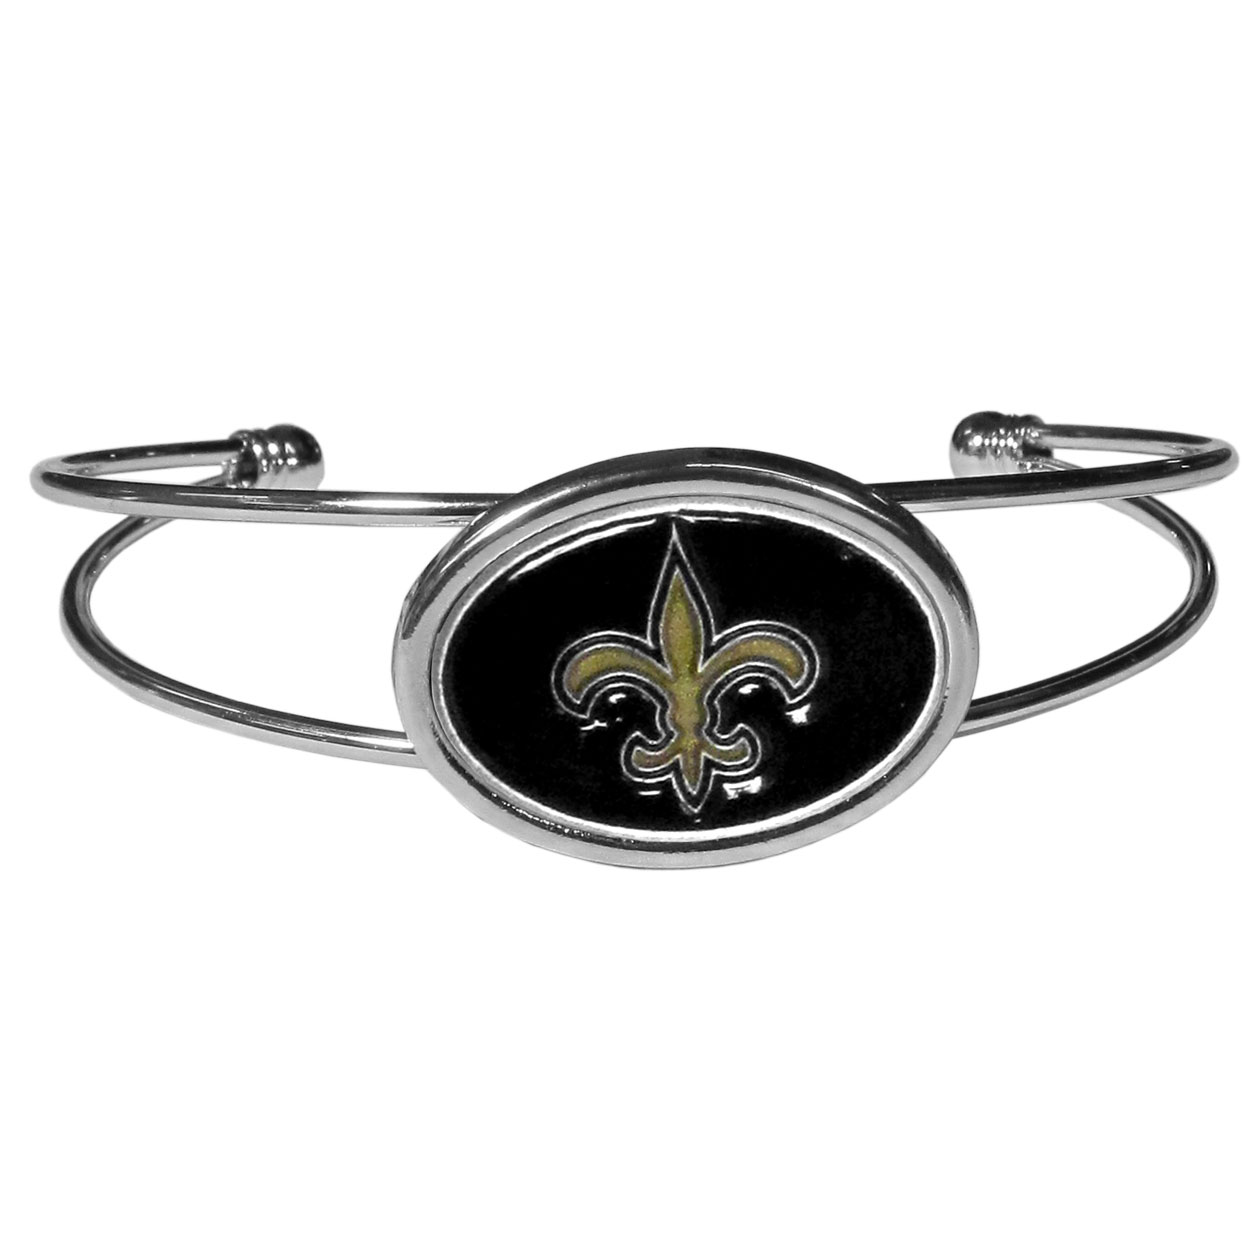 New Orleans Saints Cuff Bracelet - These comfortable and fashionable double-bar cuff bracelets feature a 1 inch metal New Orleans Saints inset logo with enameled detail.